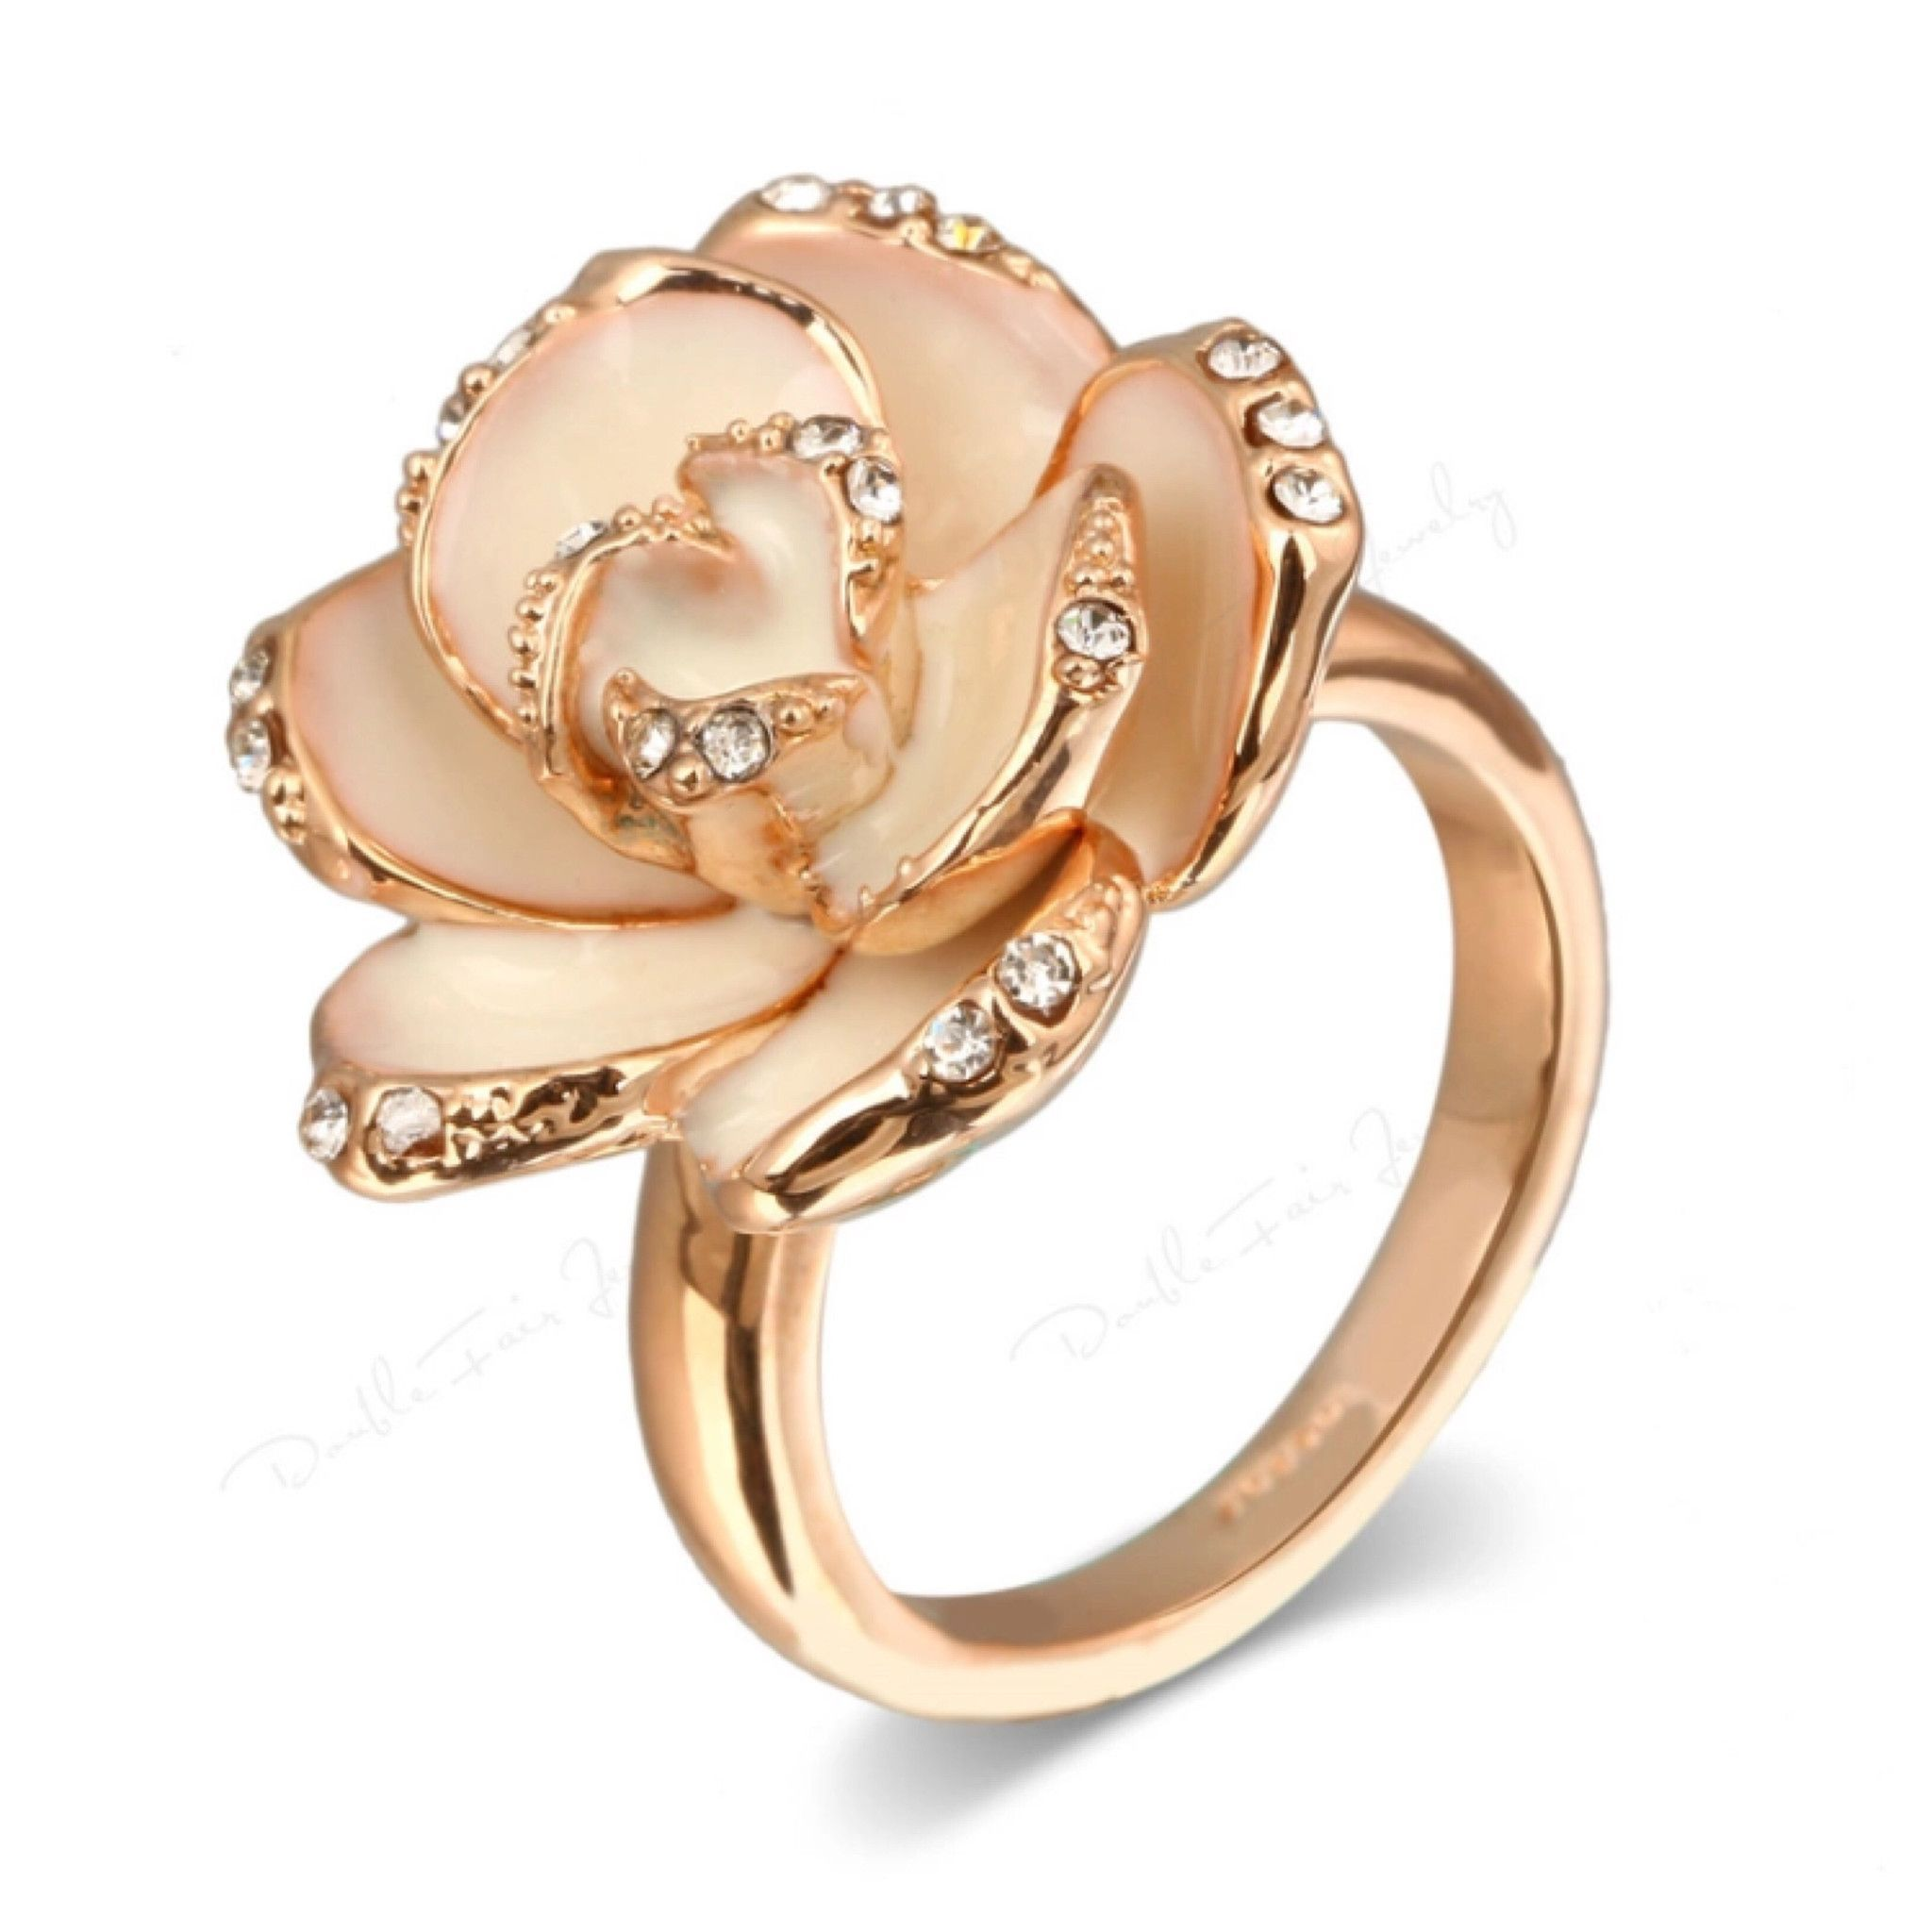 ring jewelry band products de diamond camellia chanel profil enlarged the rings